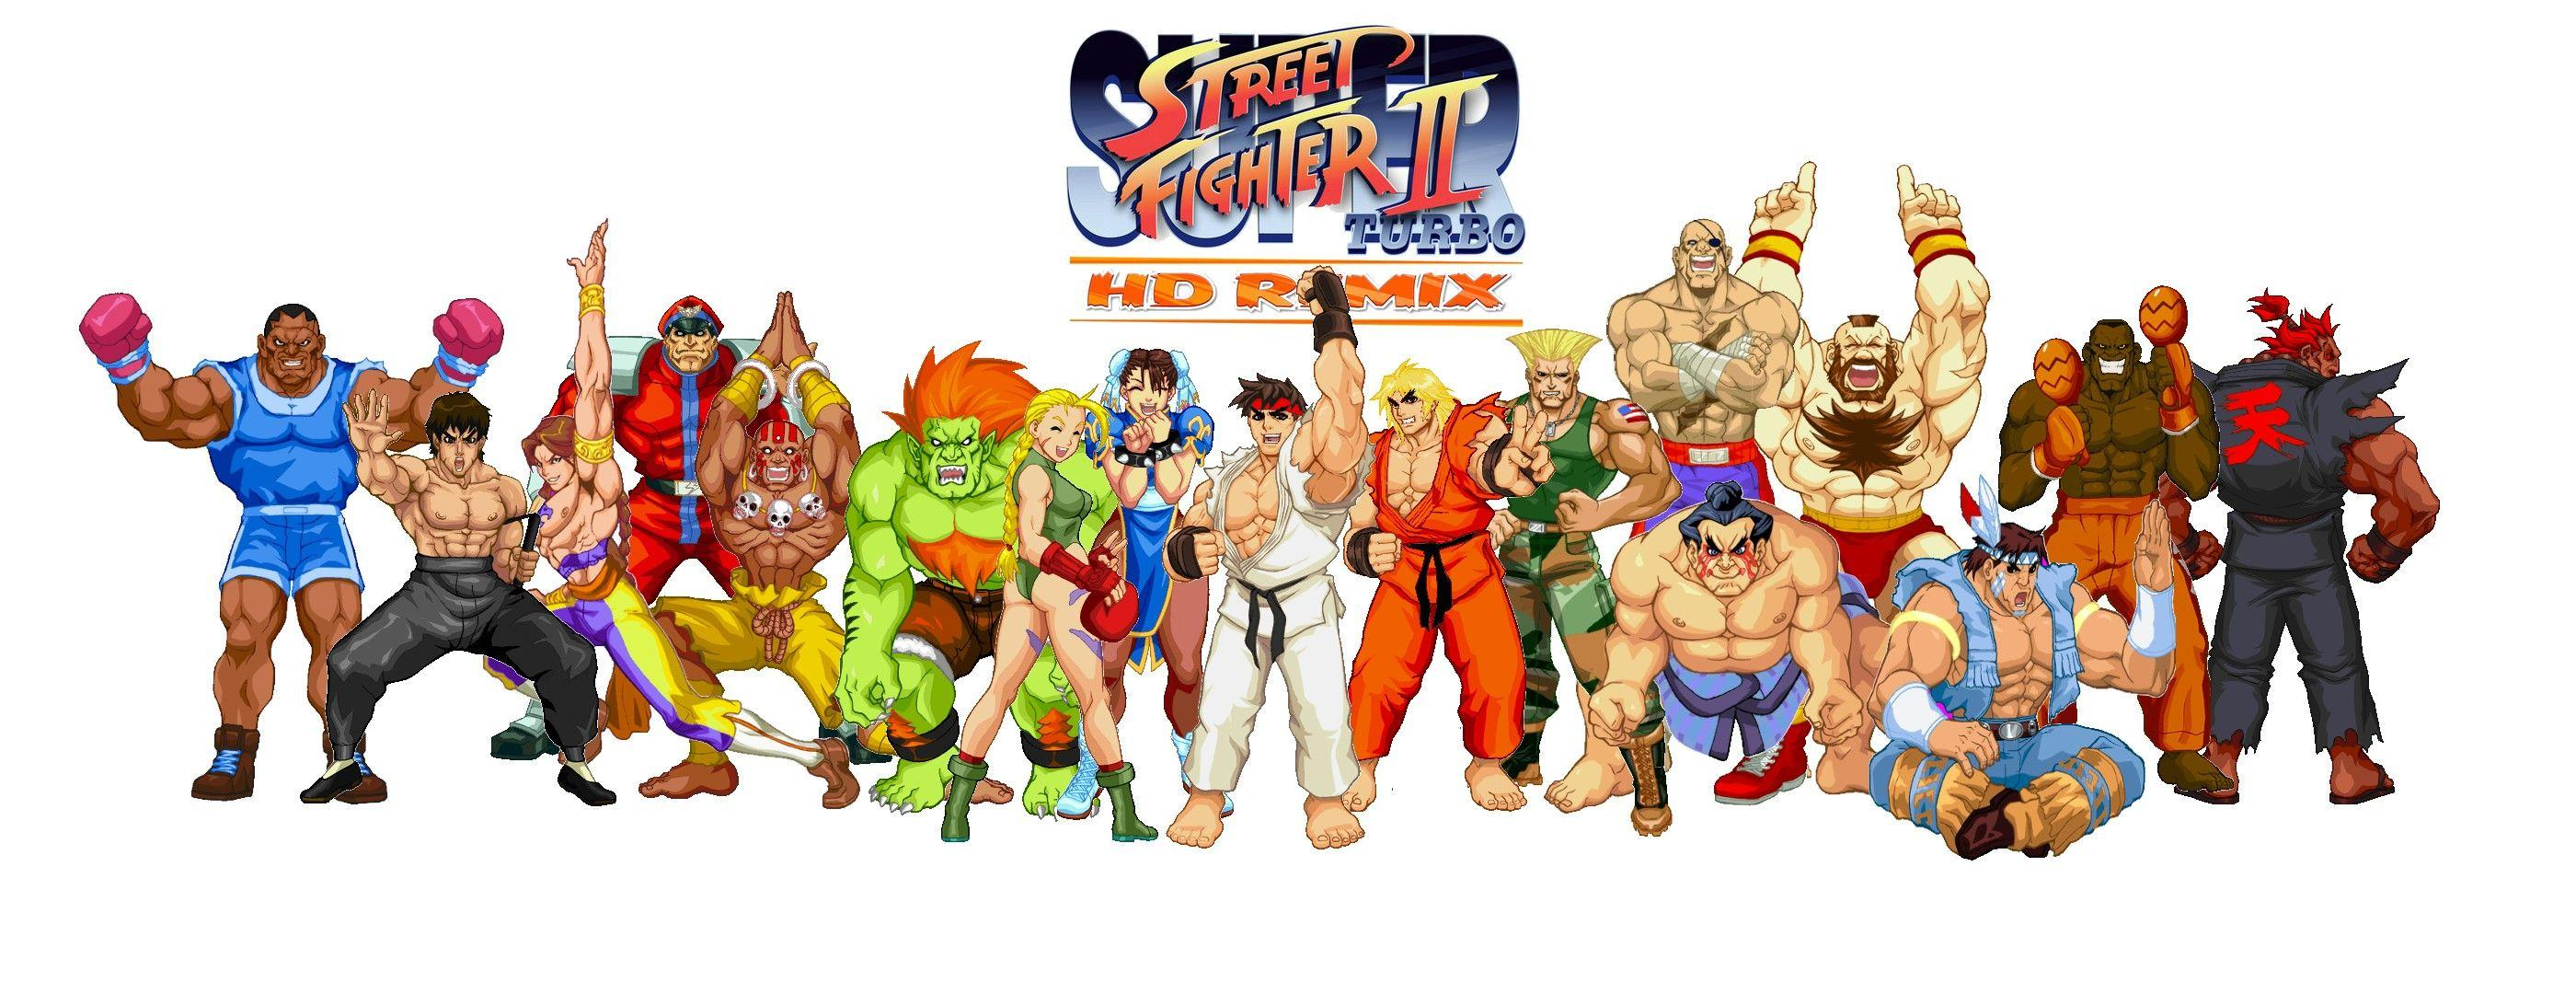 Street Fighter 2 Wallpapers – Scalsys